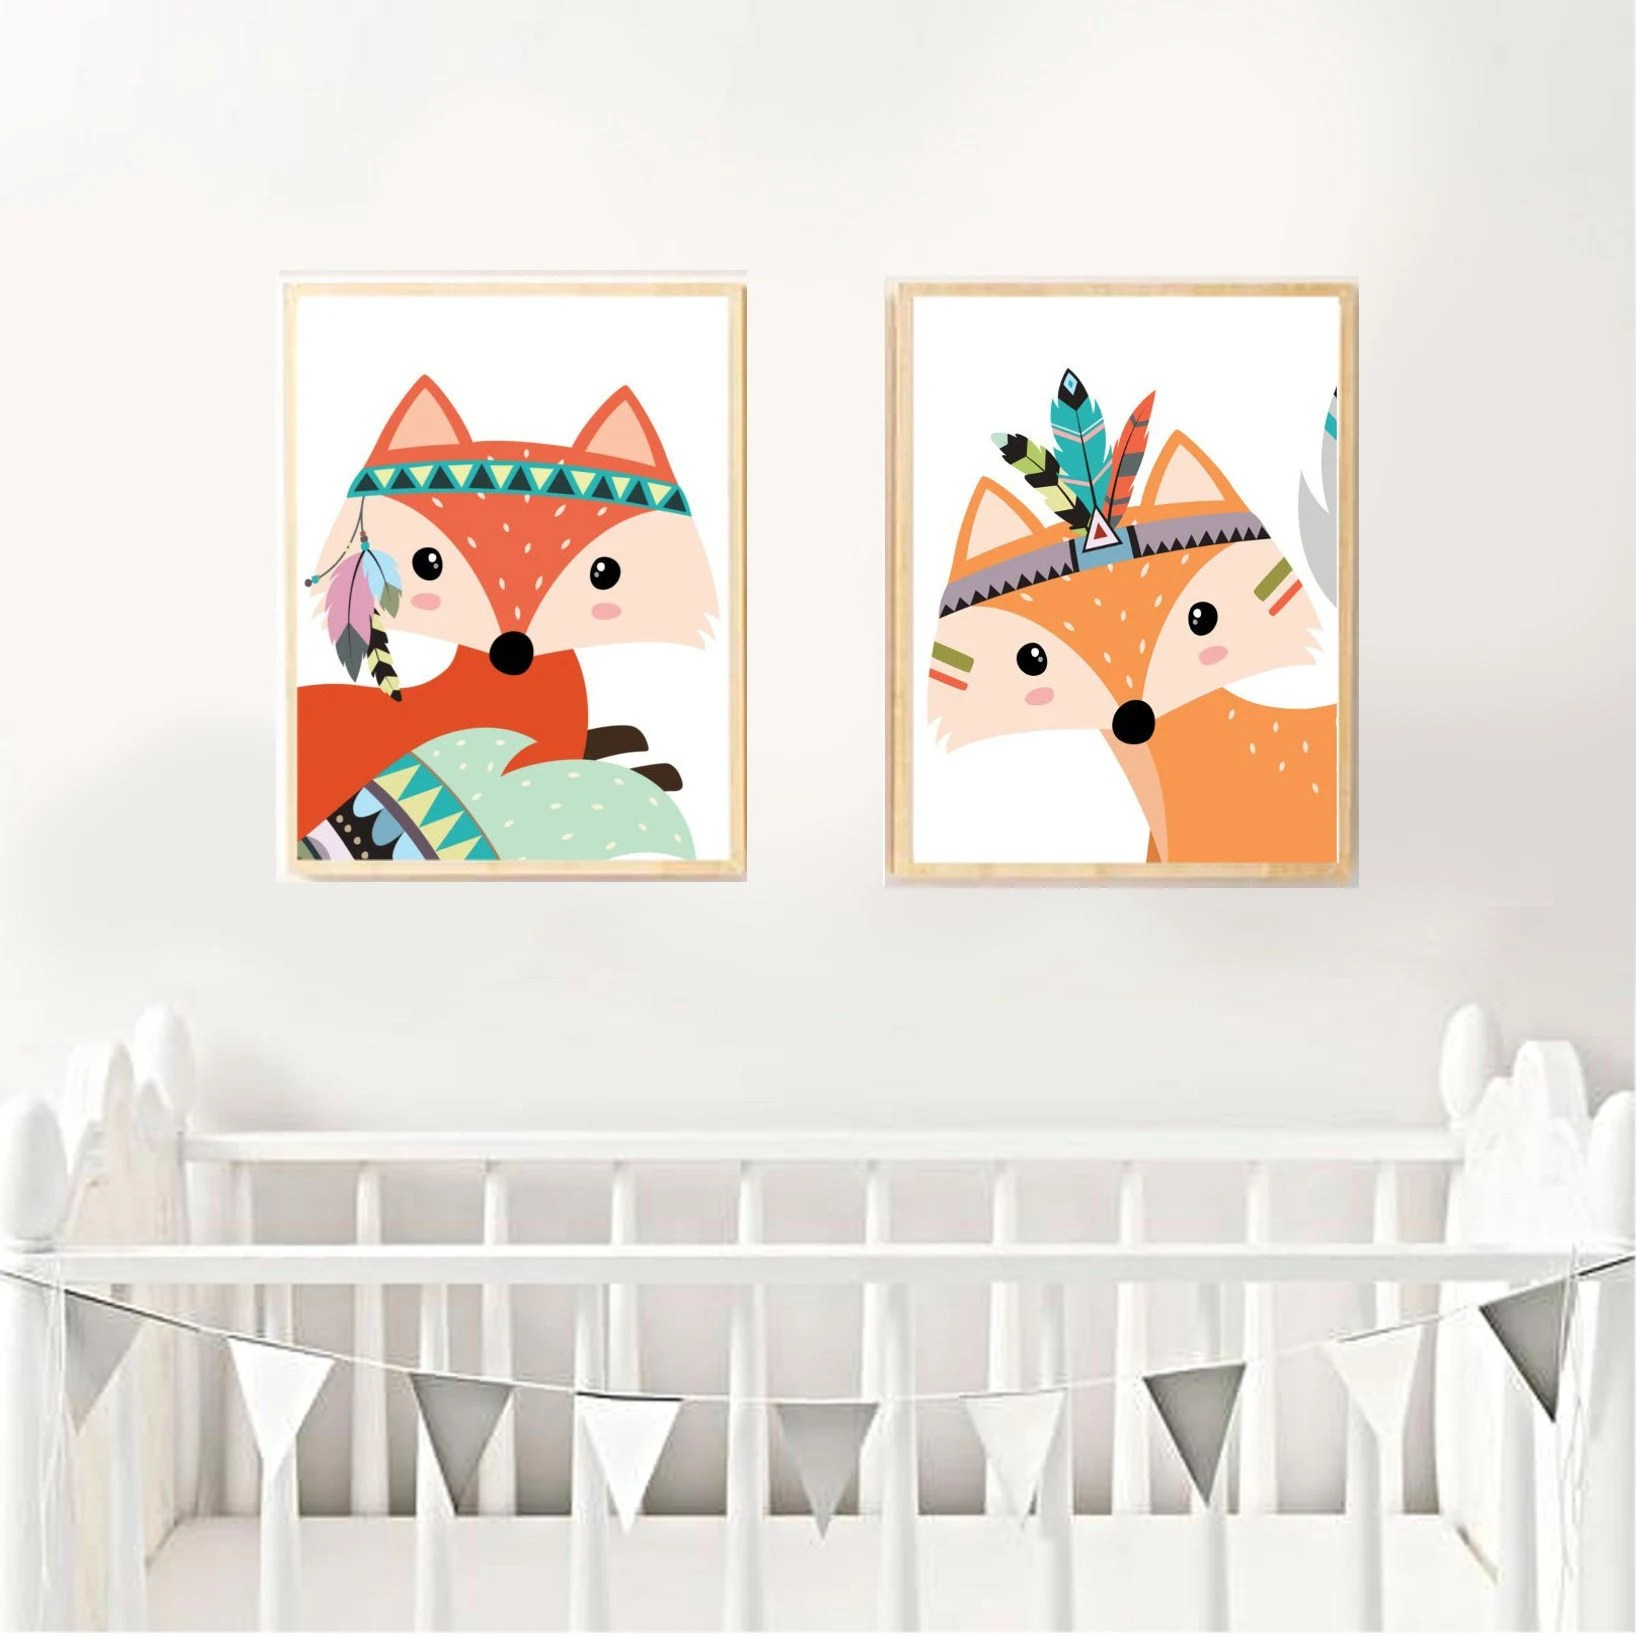 Kinderzimmer Indianer Poster Kinderzimmer Thema Fox Indianer Oder Tribal